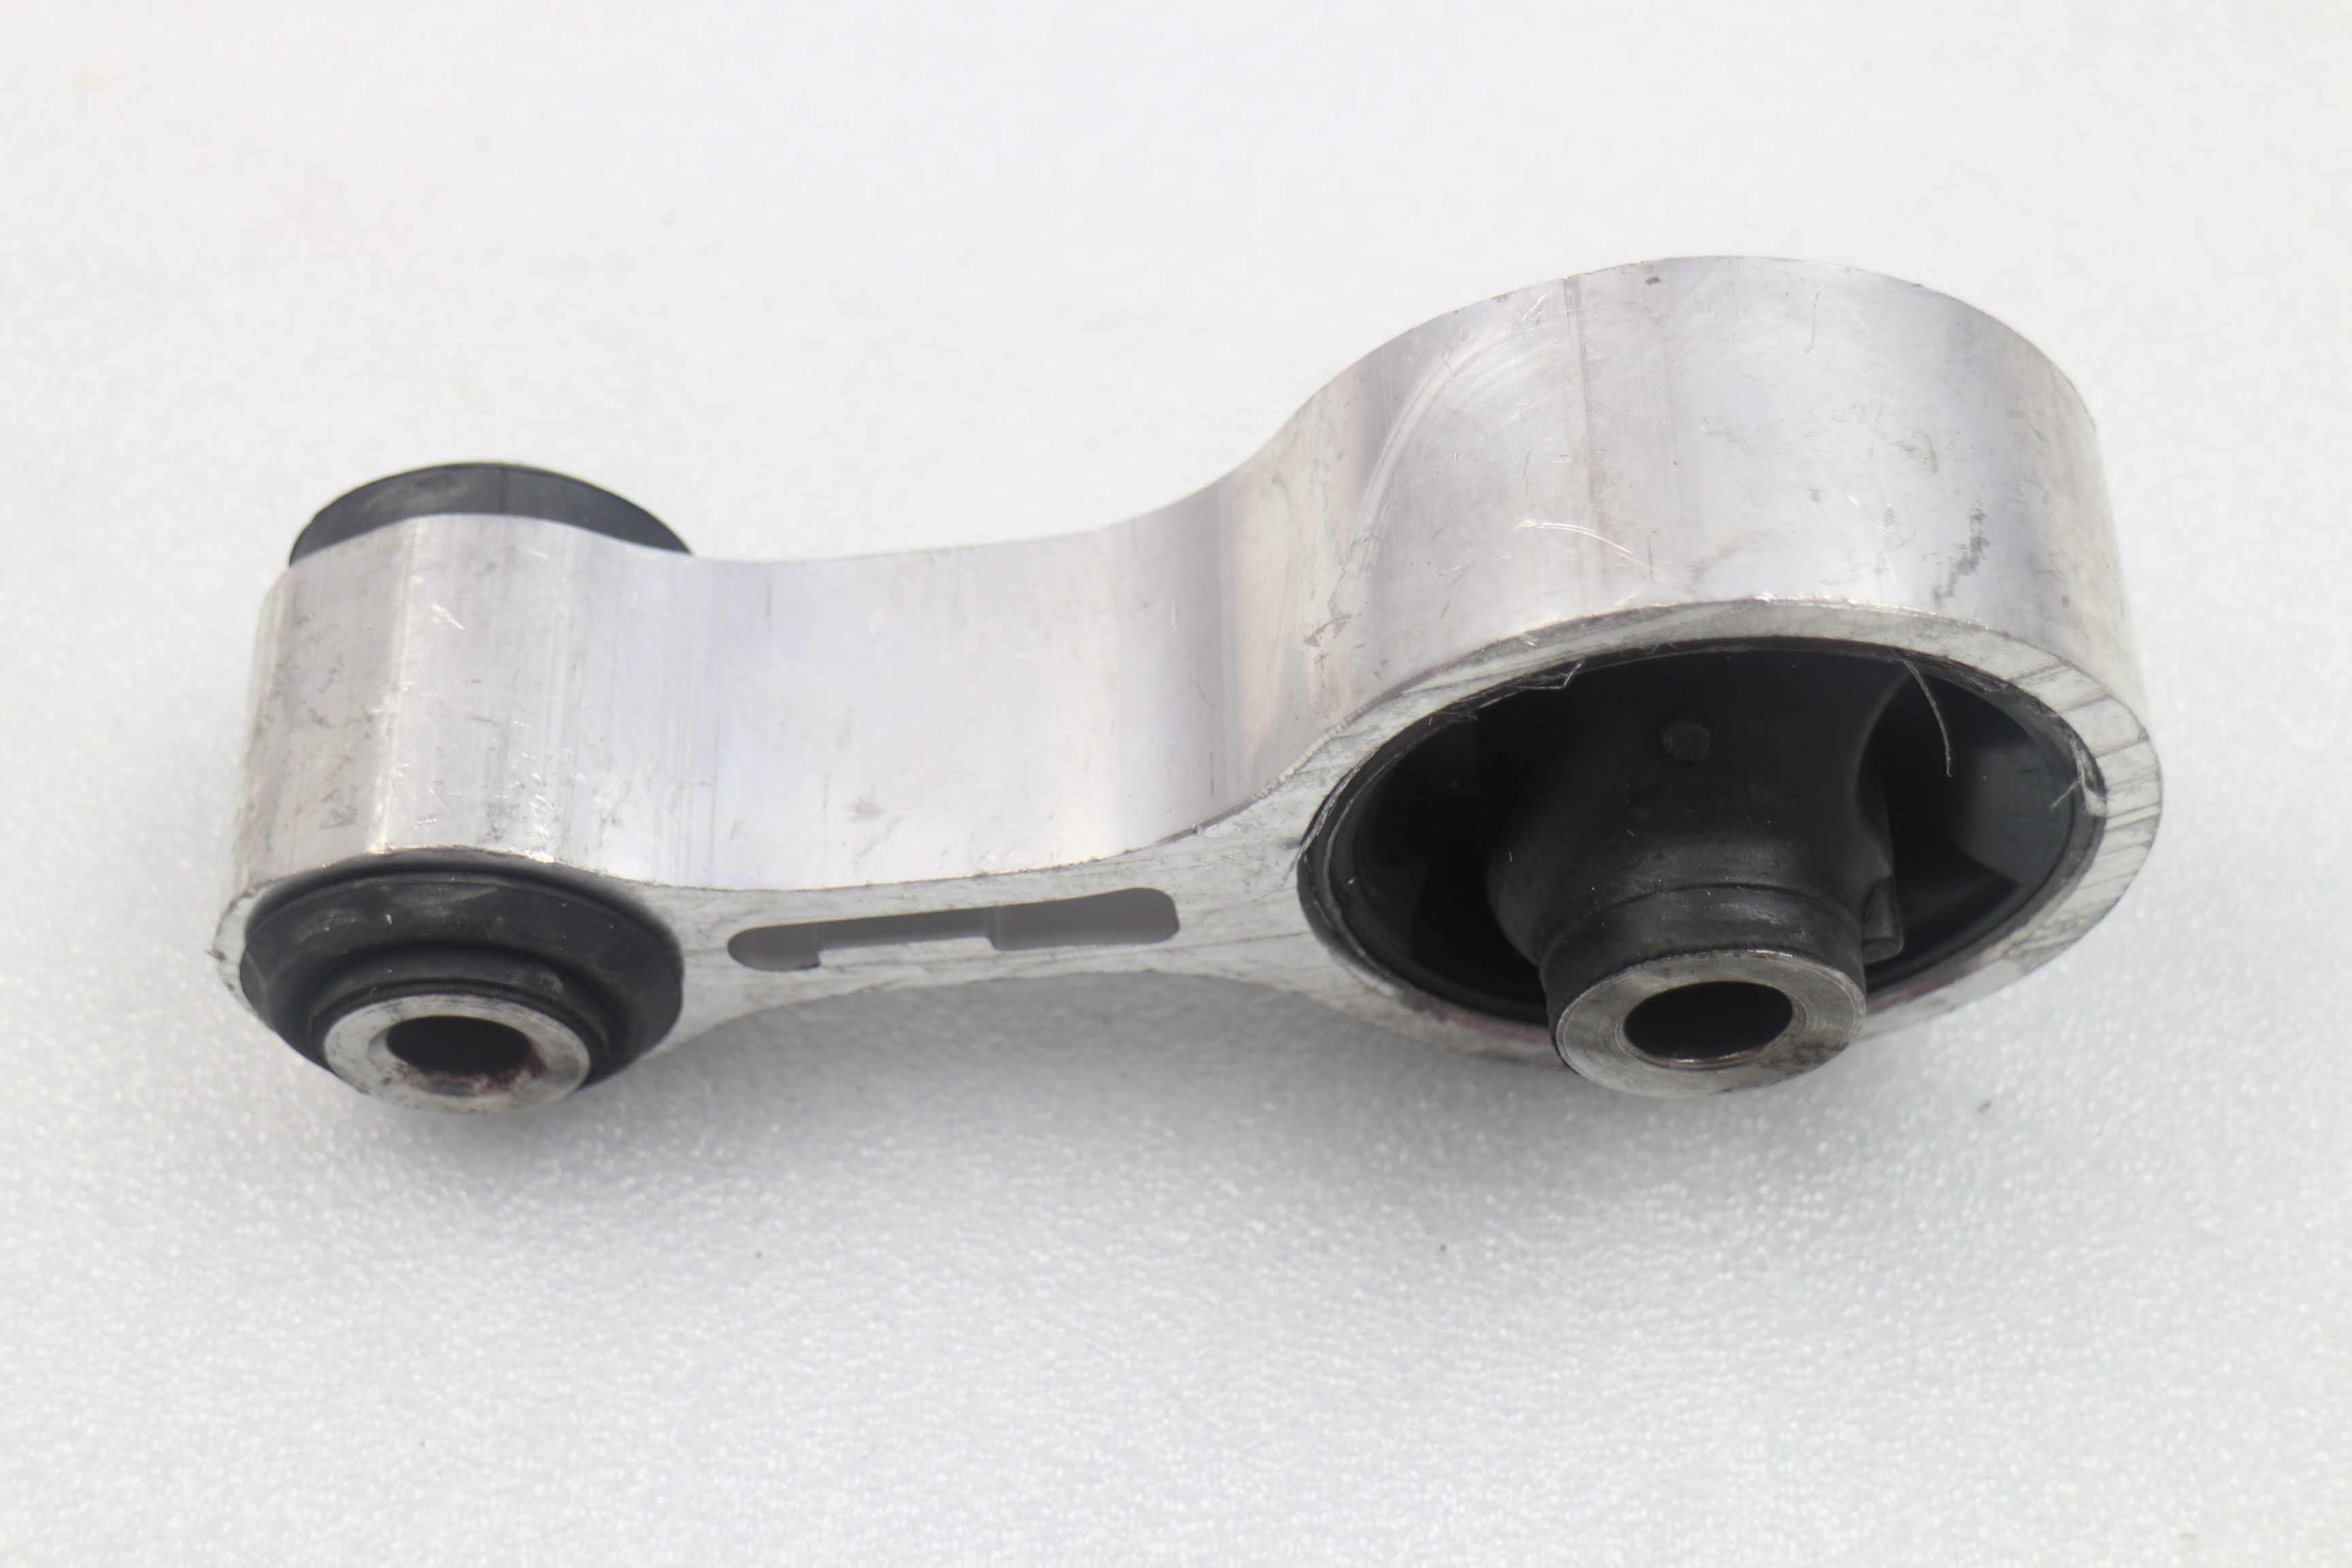 Gj6a-39-040a Engine Support Rear Mazda 6 Oem